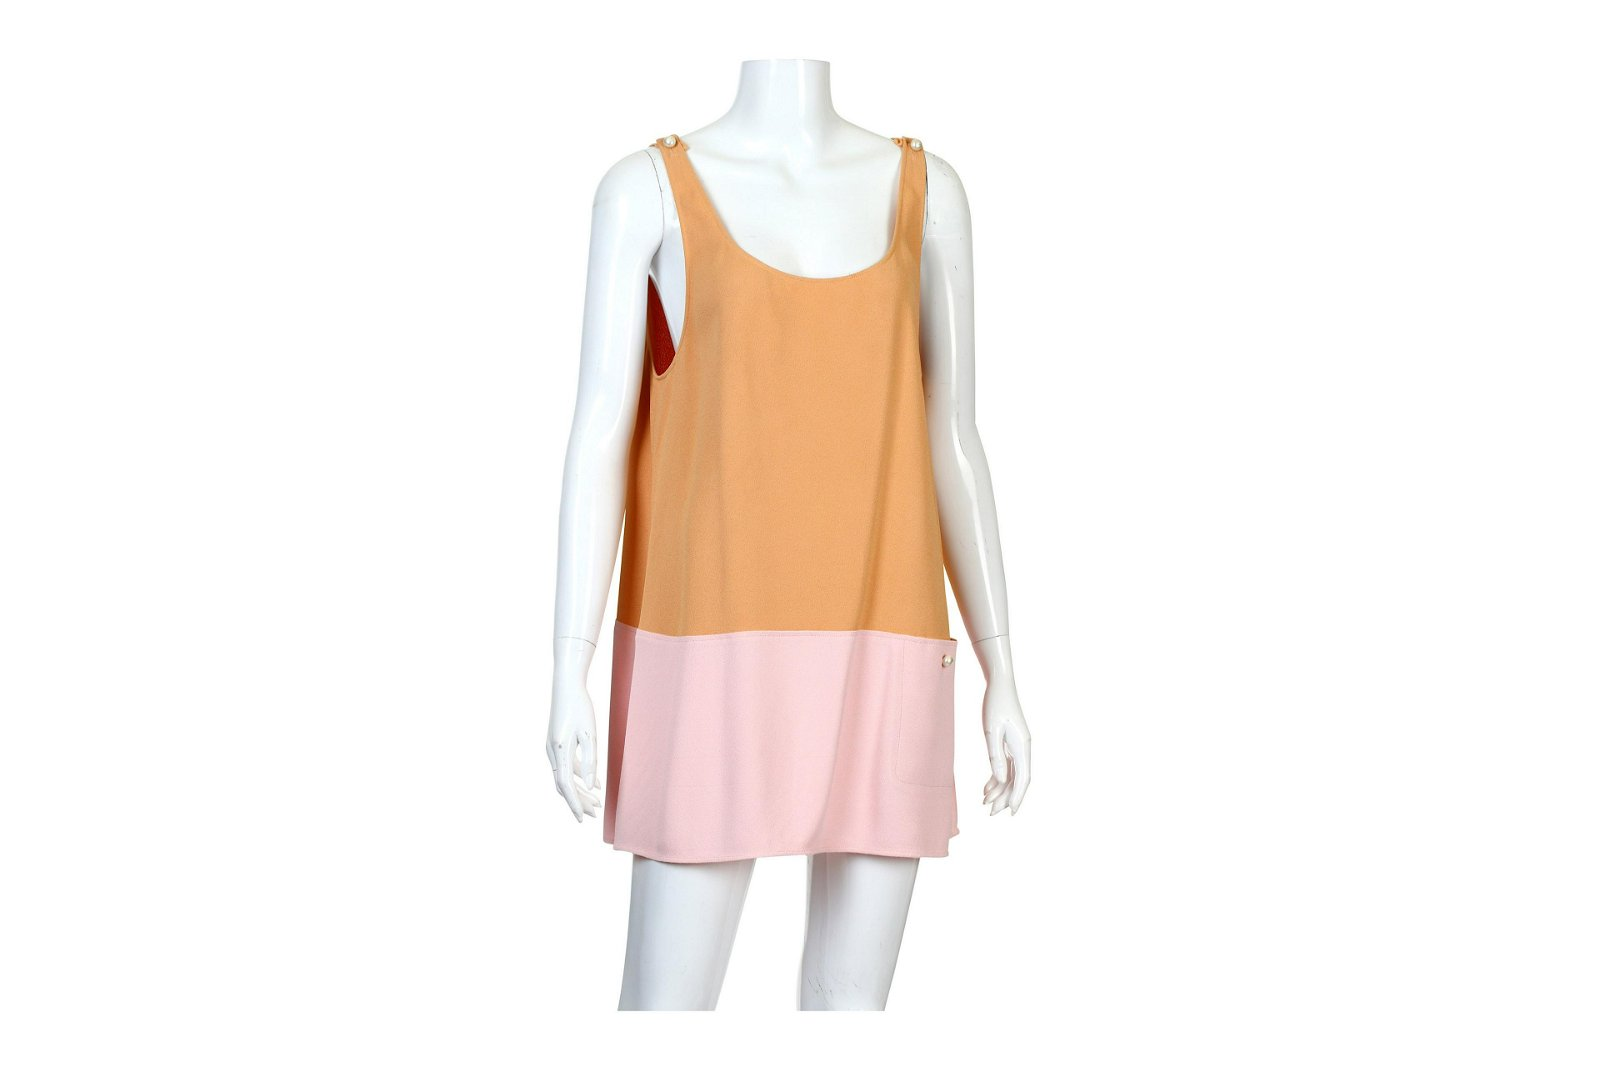 Chanel Orange and Pink Crepe Top/Dress